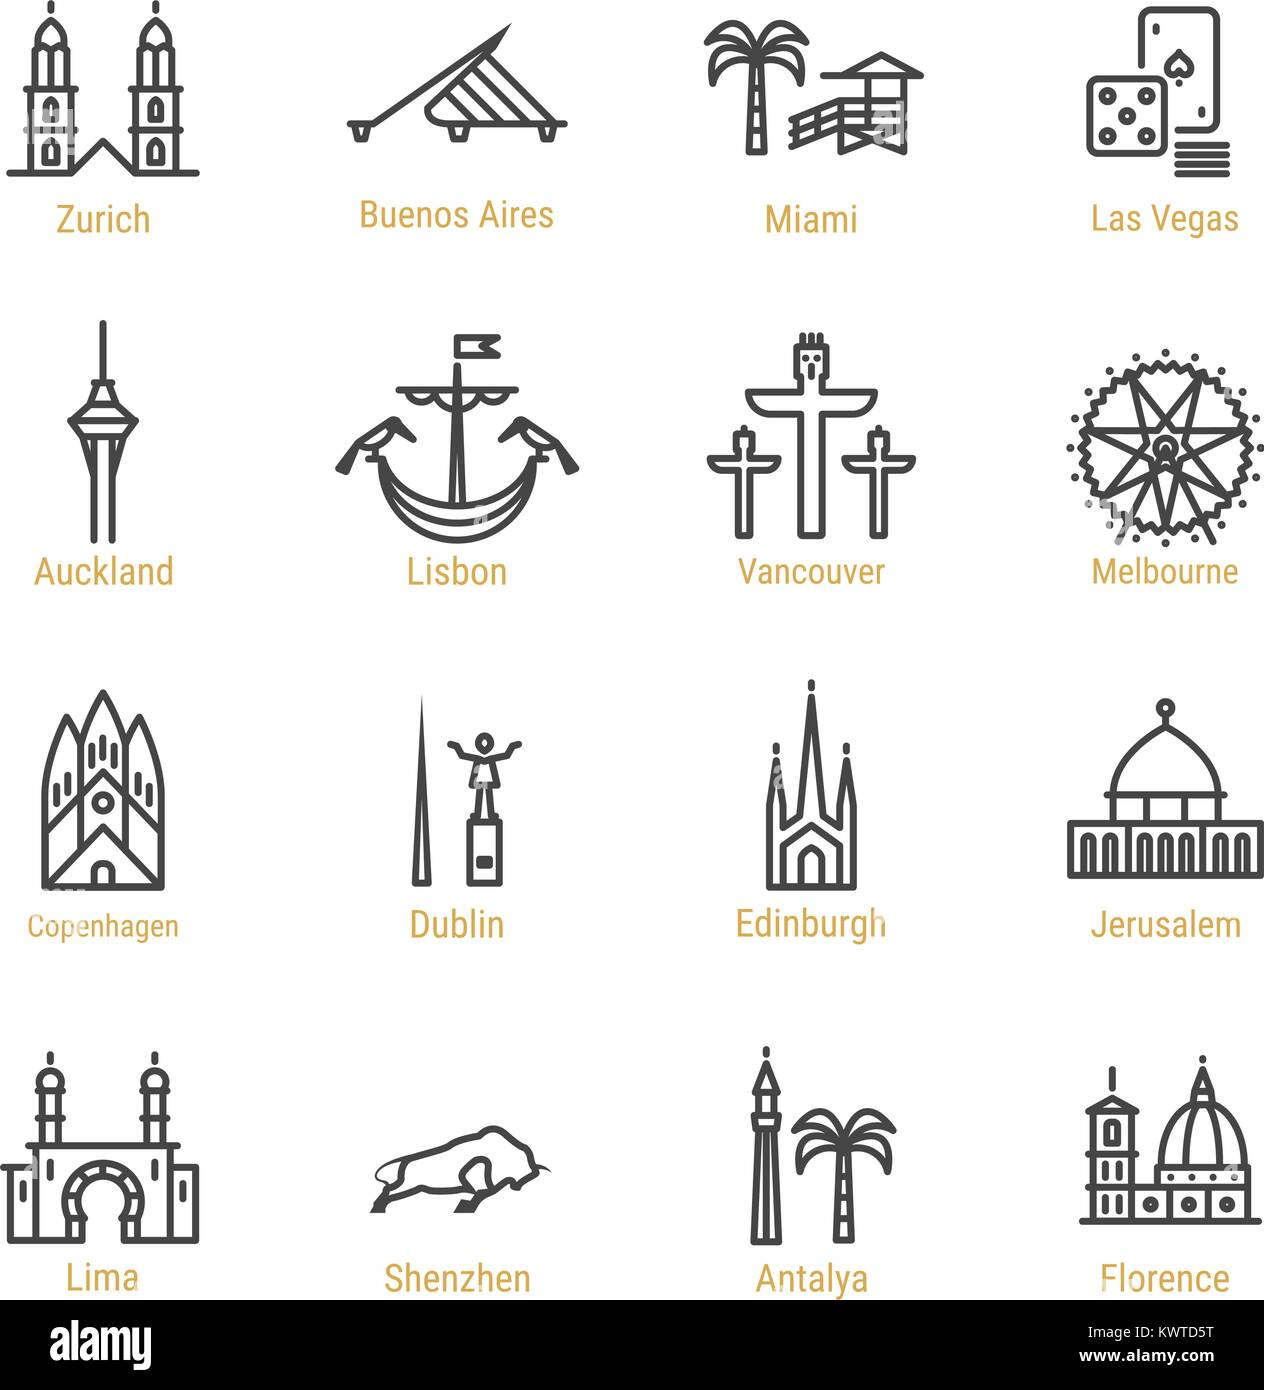 World Landmarks - Vector Line Icon Set - Part IV - Stock Vector